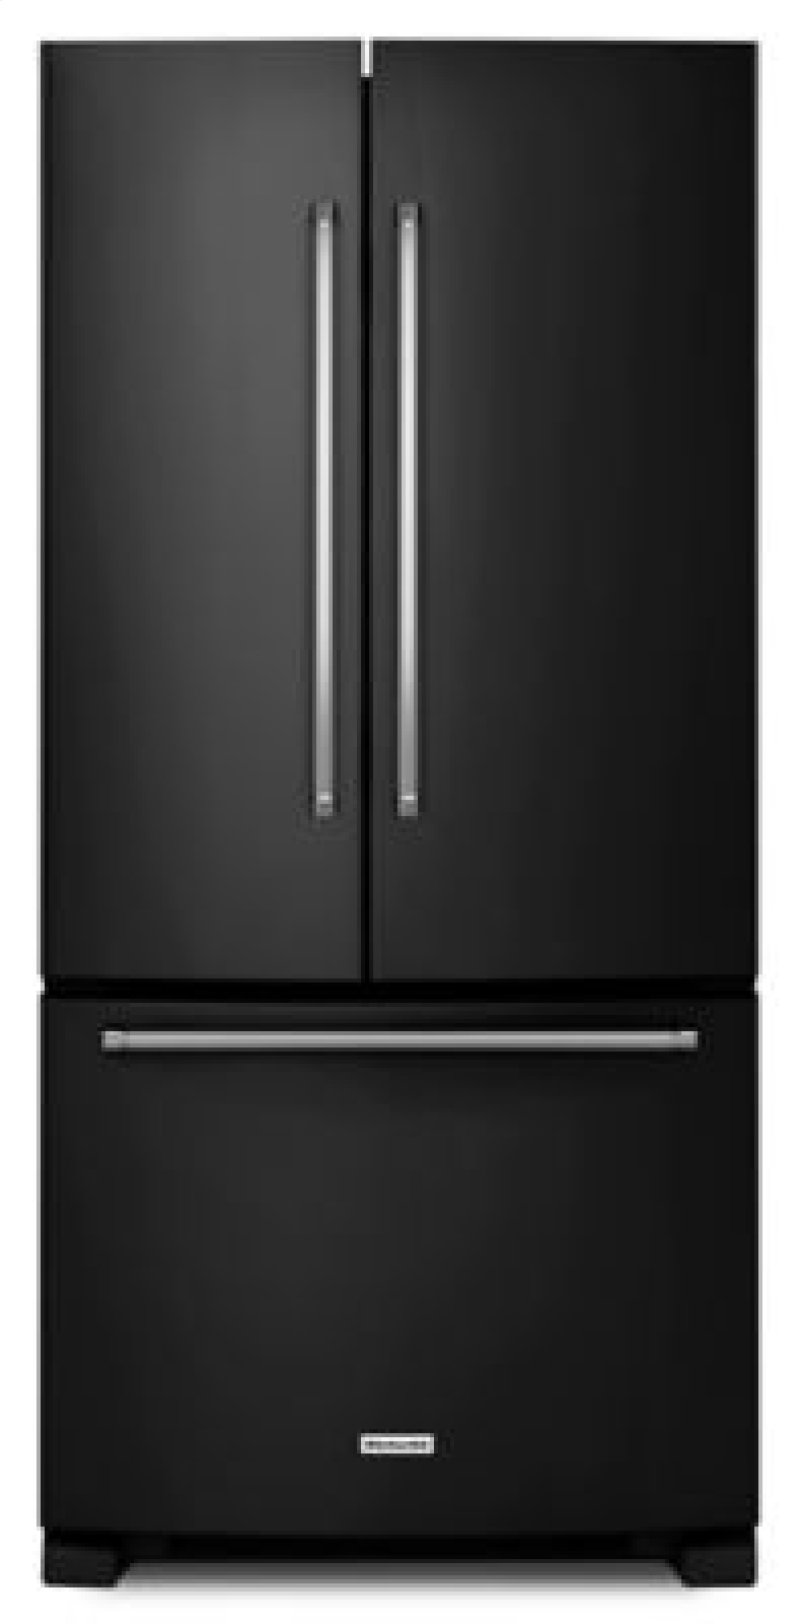 French Door 22 cubic foot french door refrigerator pictures : KRFF302EBL in Black by KitchenAid in Grinnell, IA - 22 Cu. Ft. 33 ...